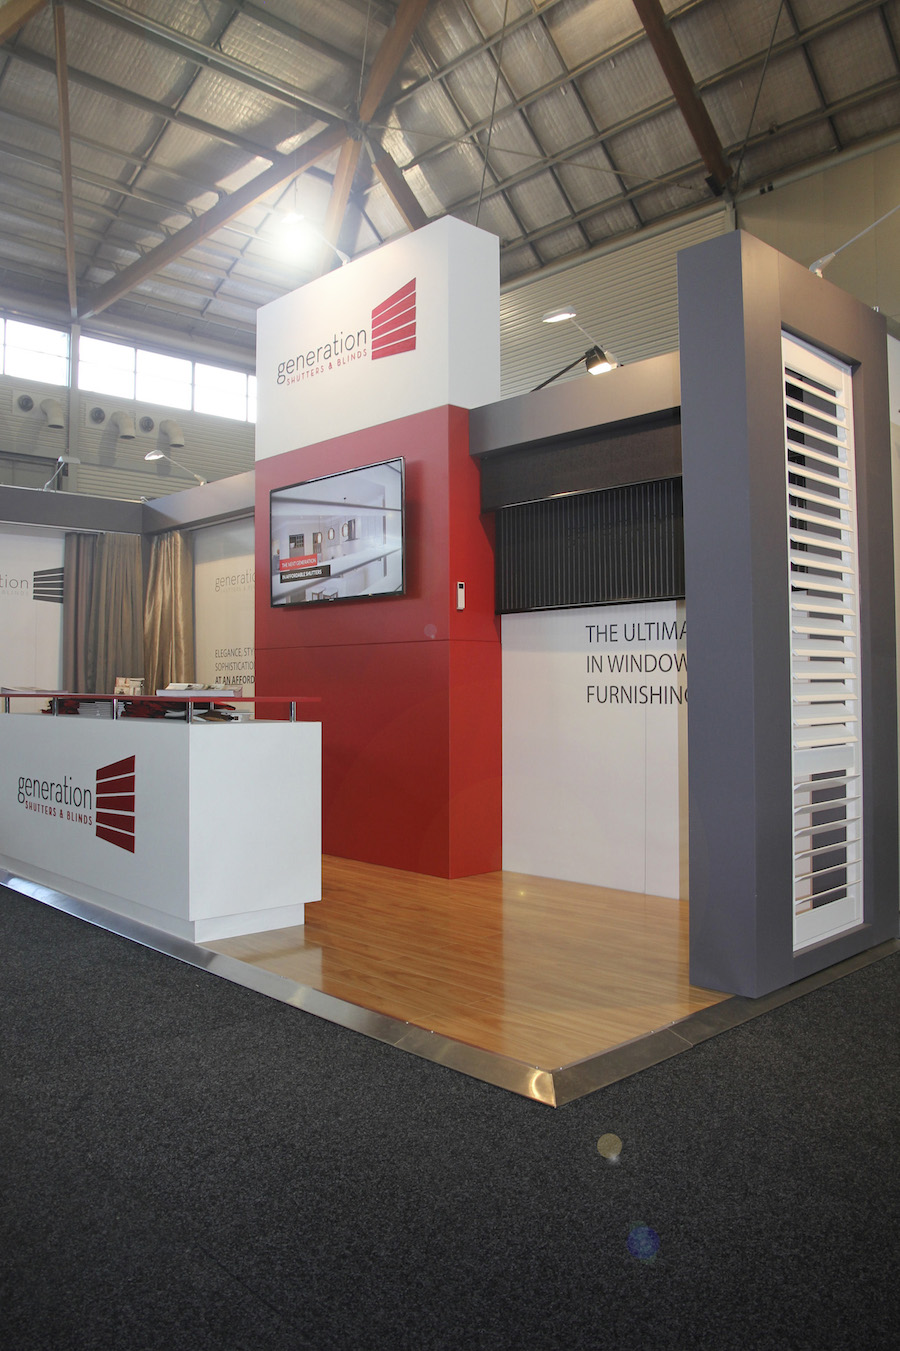 360-display-retail-expo-systems-stands-hire-designers-sydney-melbourne-newcastle-gold-coast-brisbane-Generation-Shutters-2.jpg